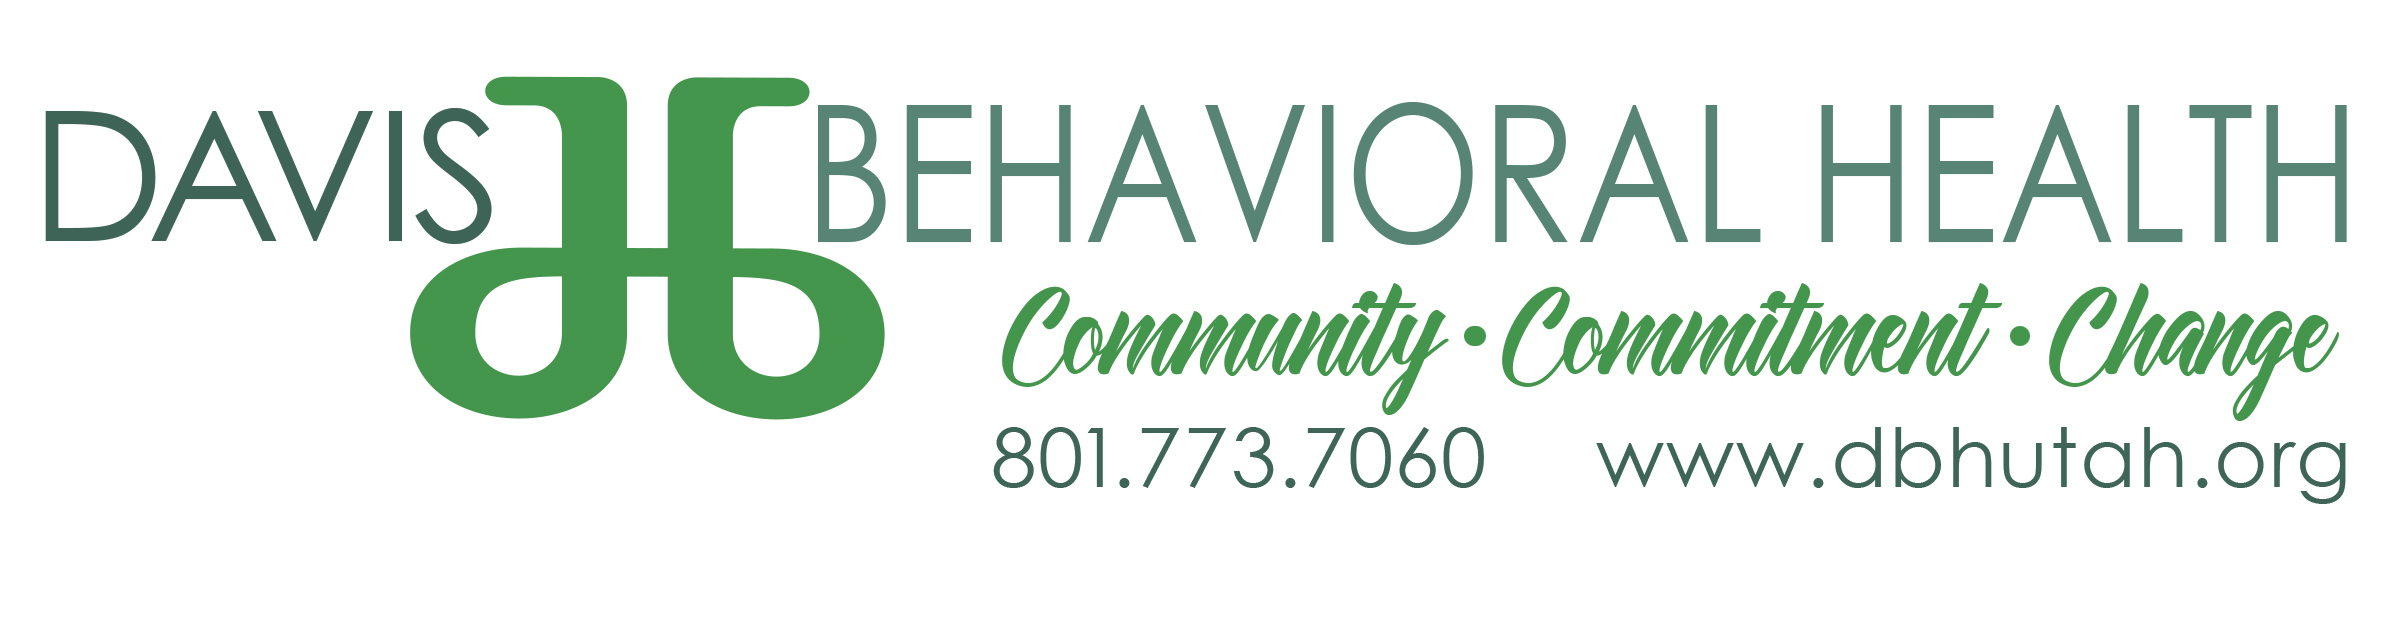 Davis Behavioral Health.NET